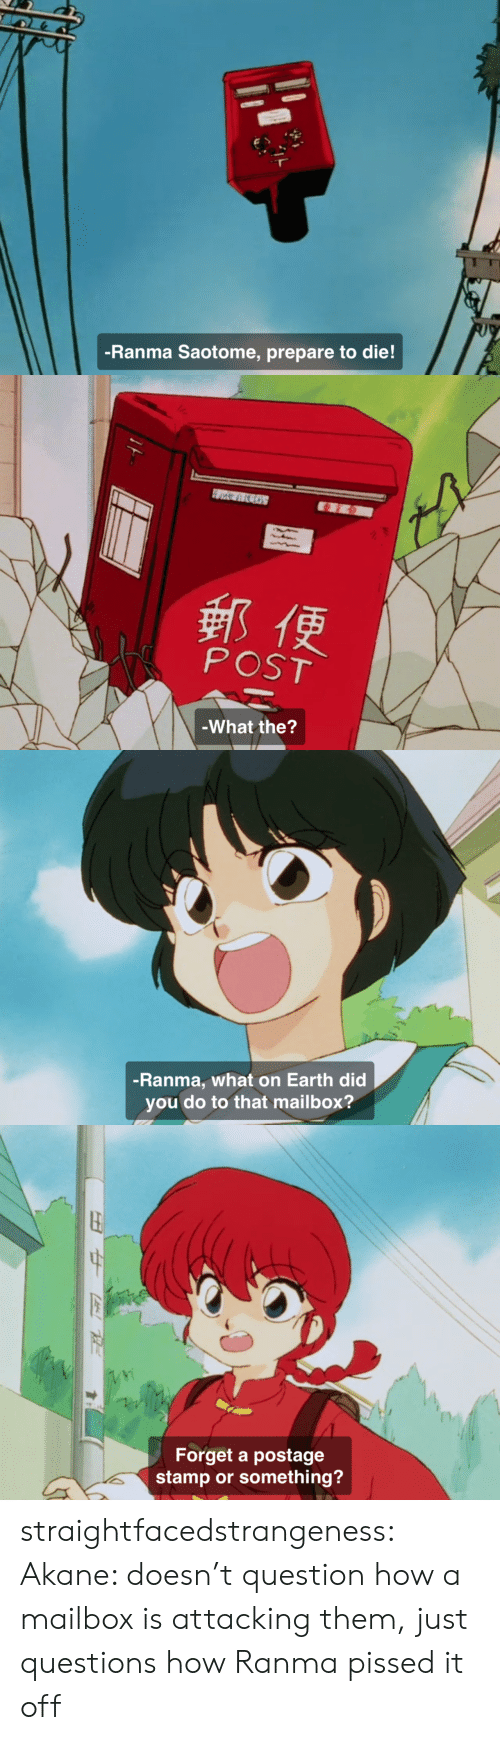 stamp: -Ranma Saotome, prepare to die!   郵便  POST  -What the?   -Ranma, what on Earth did  you do to that mailbox?   Forget a postage  stamp or something? straightfacedstrangeness:  Akane: doesn't question how a mailbox is attacking them, just questions how Ranma pissed it off